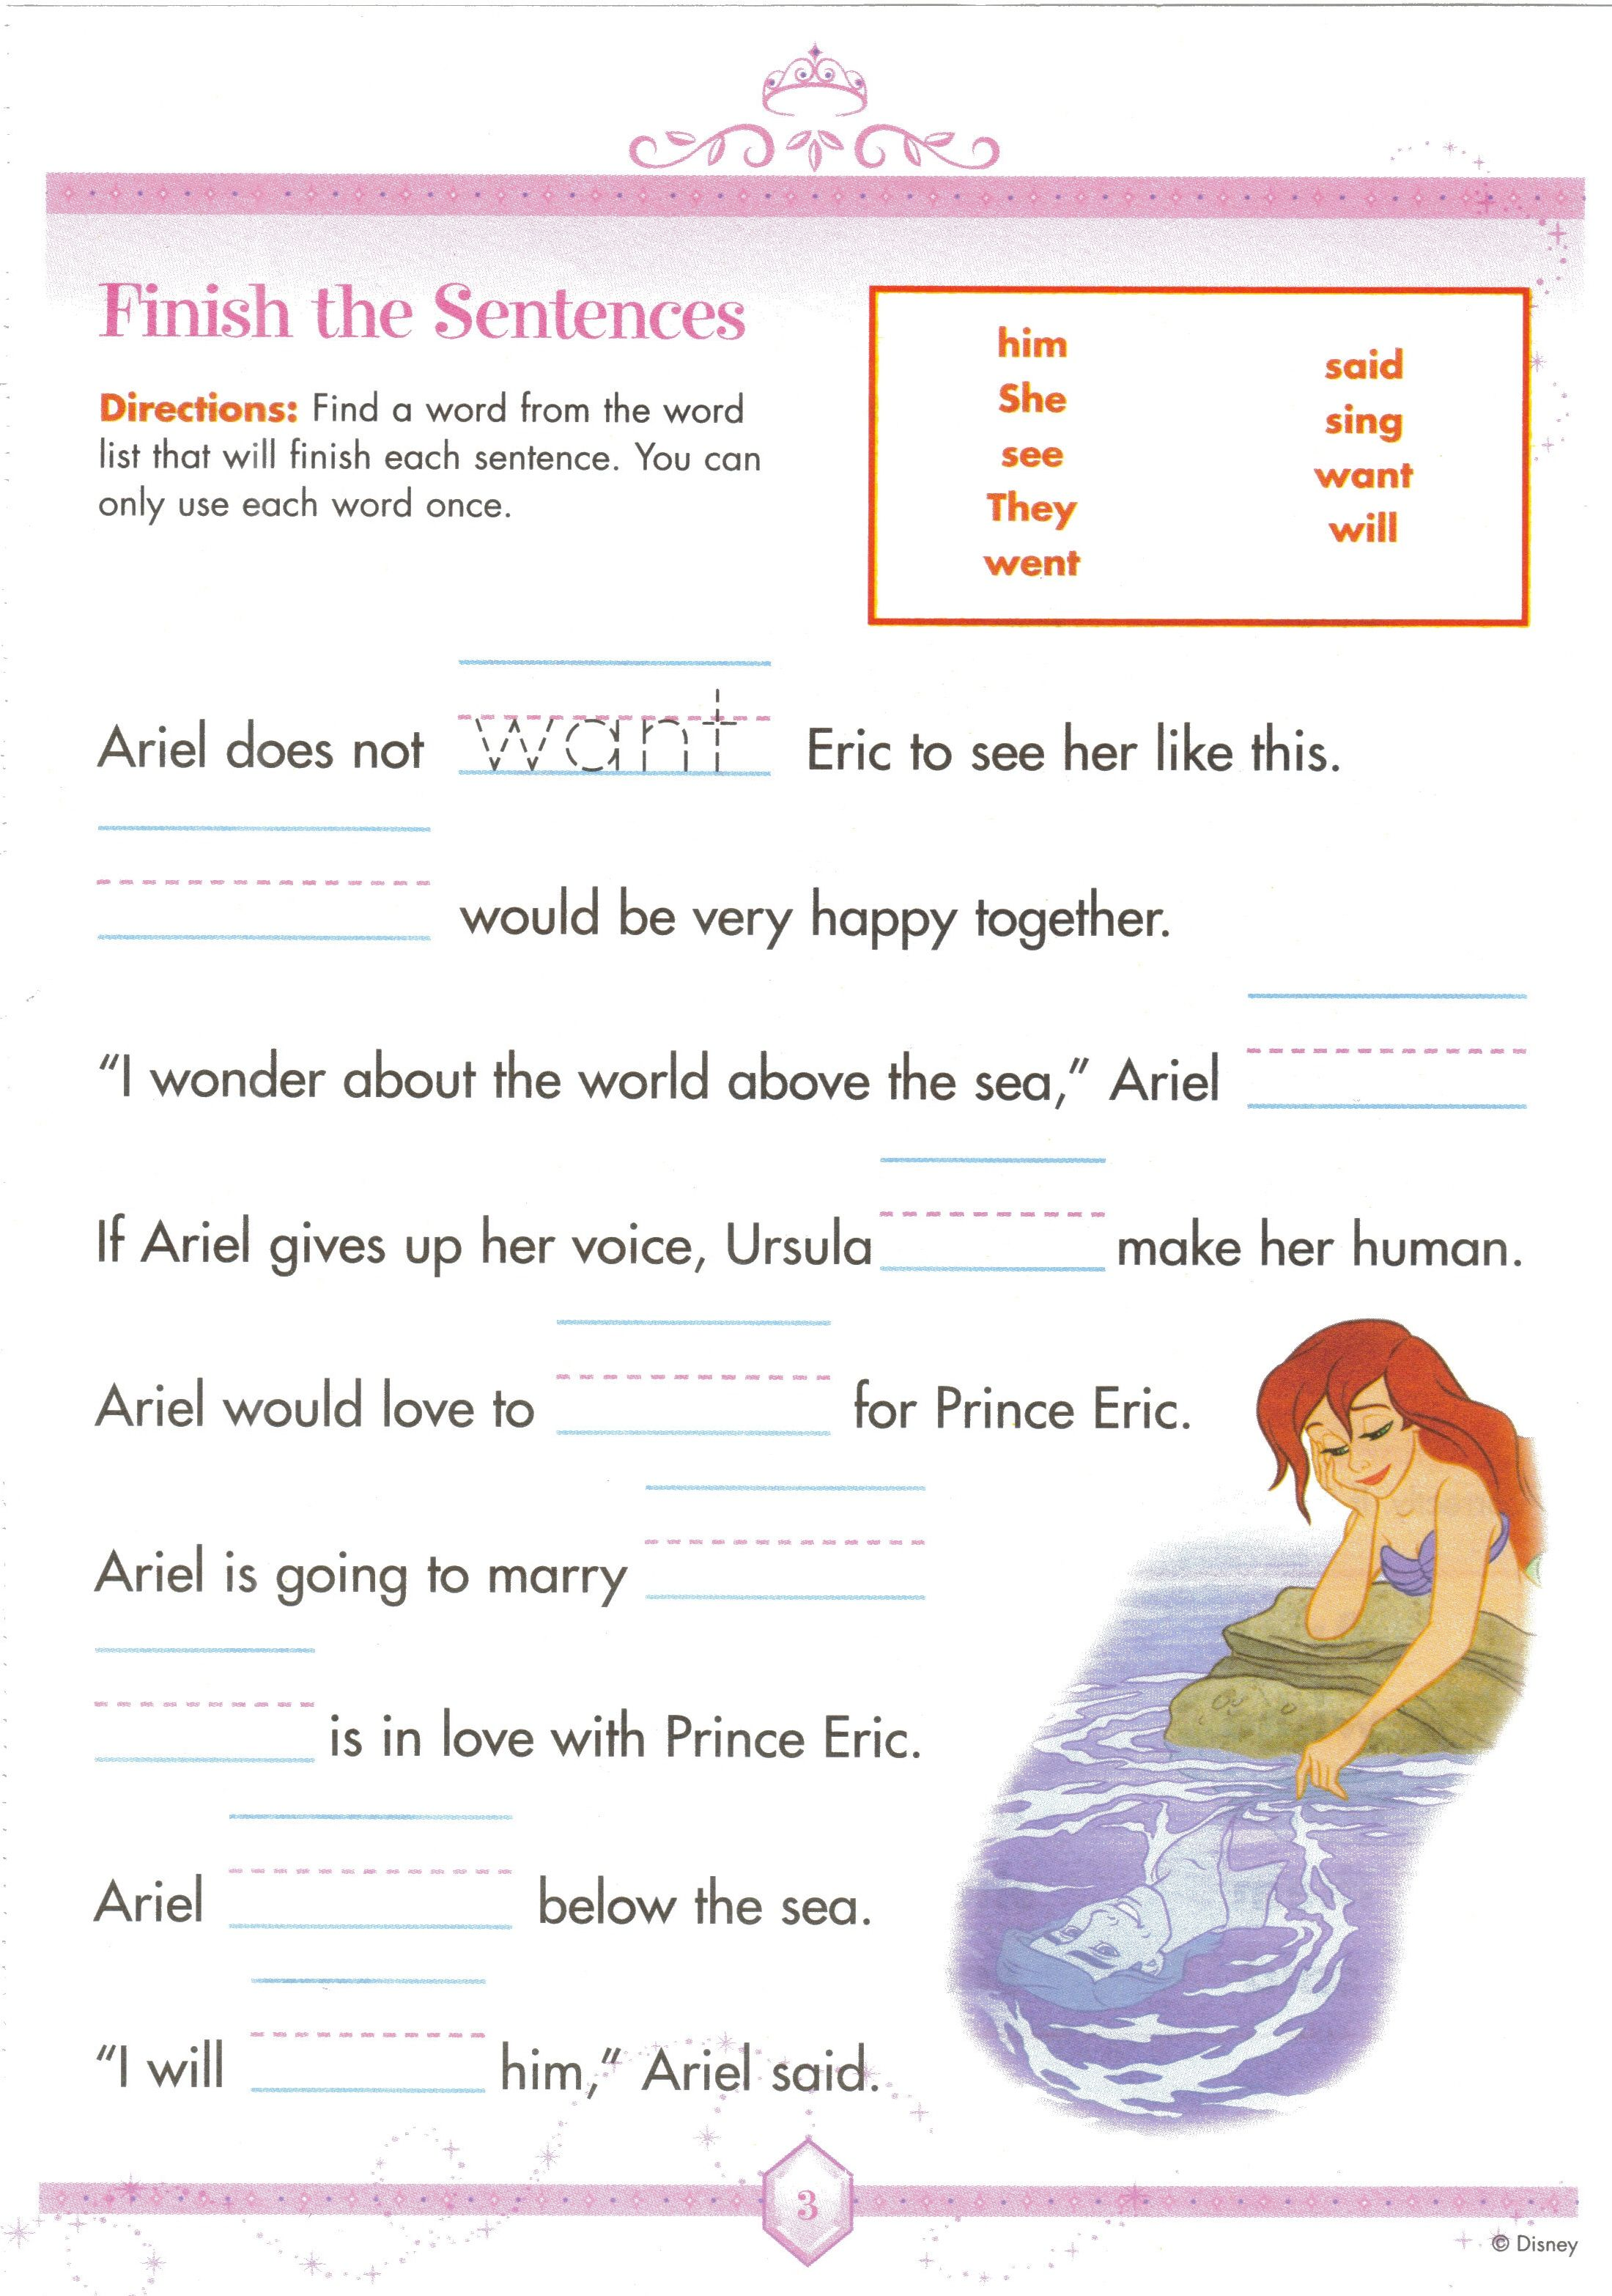 Weirdmailus  Wonderful  Images About Worksheets On Pinterest  Fun Facts For Kids  With Inspiring  Images About Worksheets On Pinterest  Fun Facts For Kids Earth Day Worksheets And Jungles With Divine Free Main Idea And Supporting Details Worksheets Also Free Printable Time Telling Worksheets In Addition Compare And Contrast Practice Worksheets And Verb Worksheet For Grade  As Well As Numbers Tracing Worksheet Additionally Worksheet On Order Of Adjectives From Pinterestcom With Weirdmailus  Inspiring  Images About Worksheets On Pinterest  Fun Facts For Kids  With Divine  Images About Worksheets On Pinterest  Fun Facts For Kids Earth Day Worksheets And Jungles And Wonderful Free Main Idea And Supporting Details Worksheets Also Free Printable Time Telling Worksheets In Addition Compare And Contrast Practice Worksheets From Pinterestcom